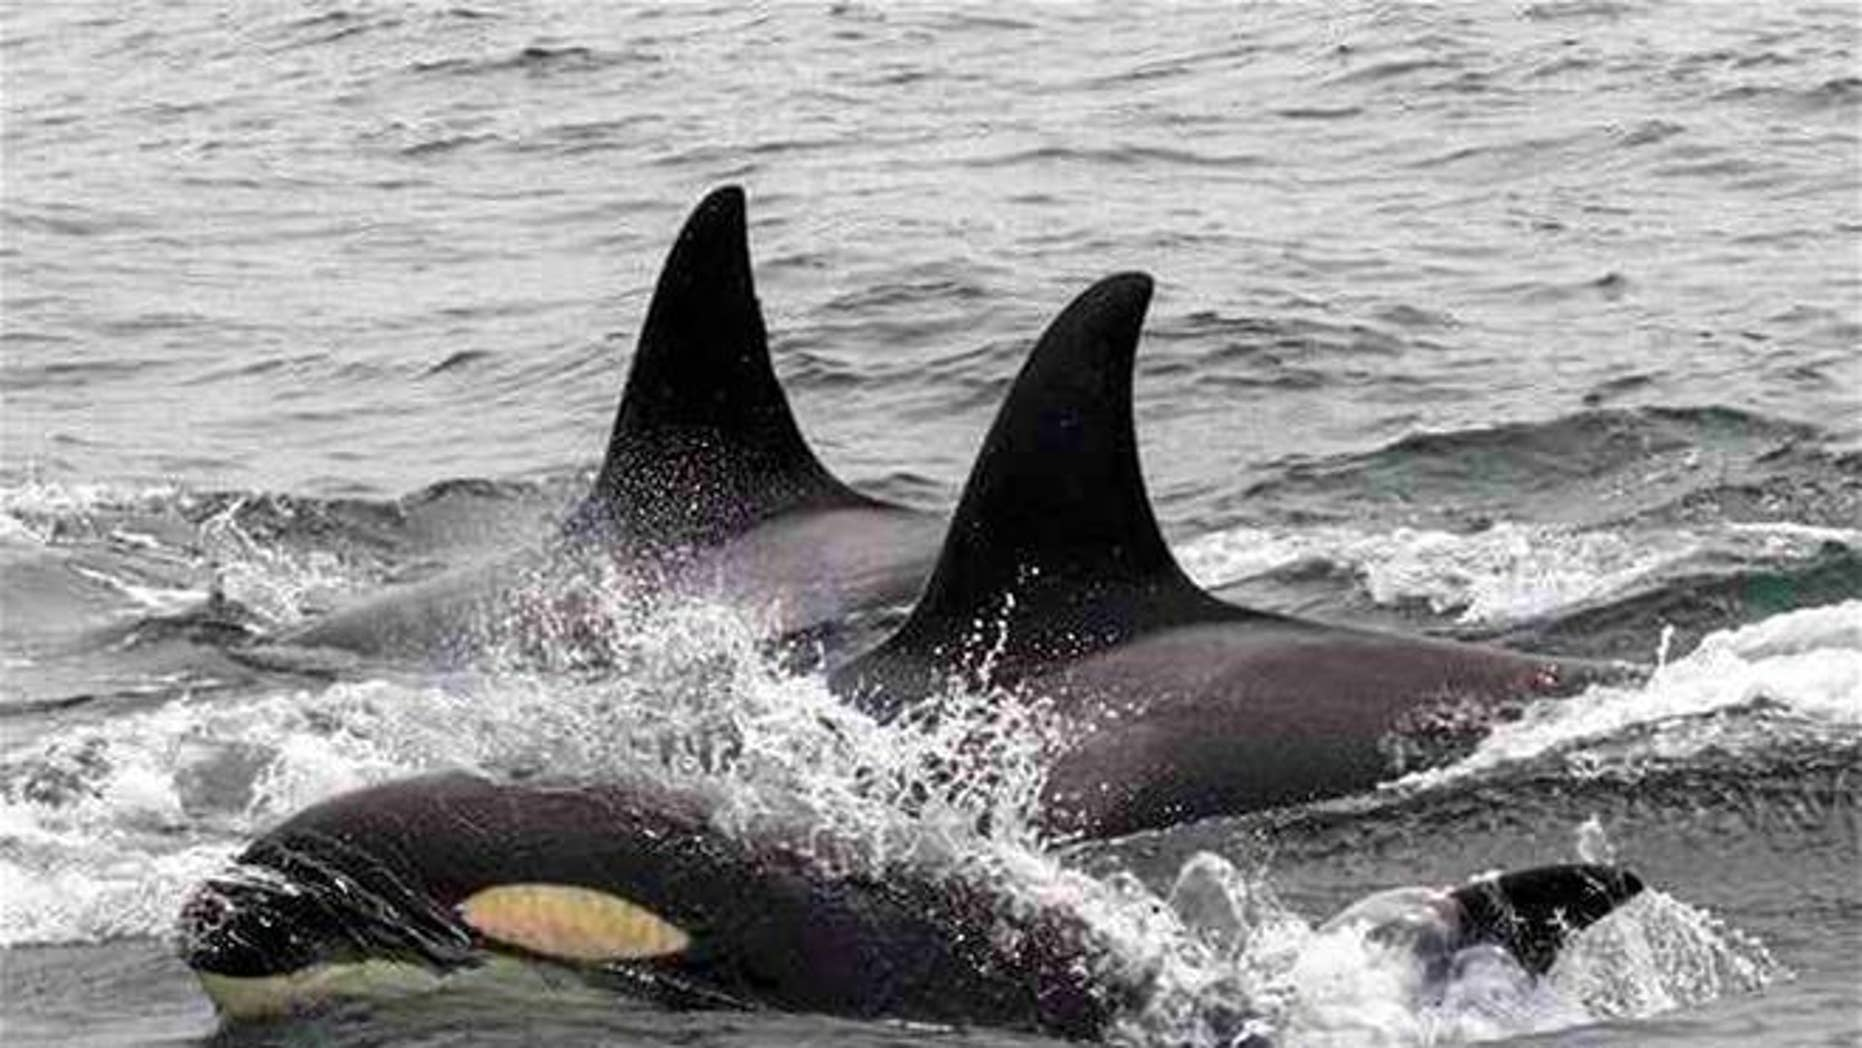 A pod of orcas in Monterey Bay offshore of Monterey, Calif. Killer whales are on an unprecedented killing spree in the bay, attacking and feeding on gray whale calves, a marine biologist said.